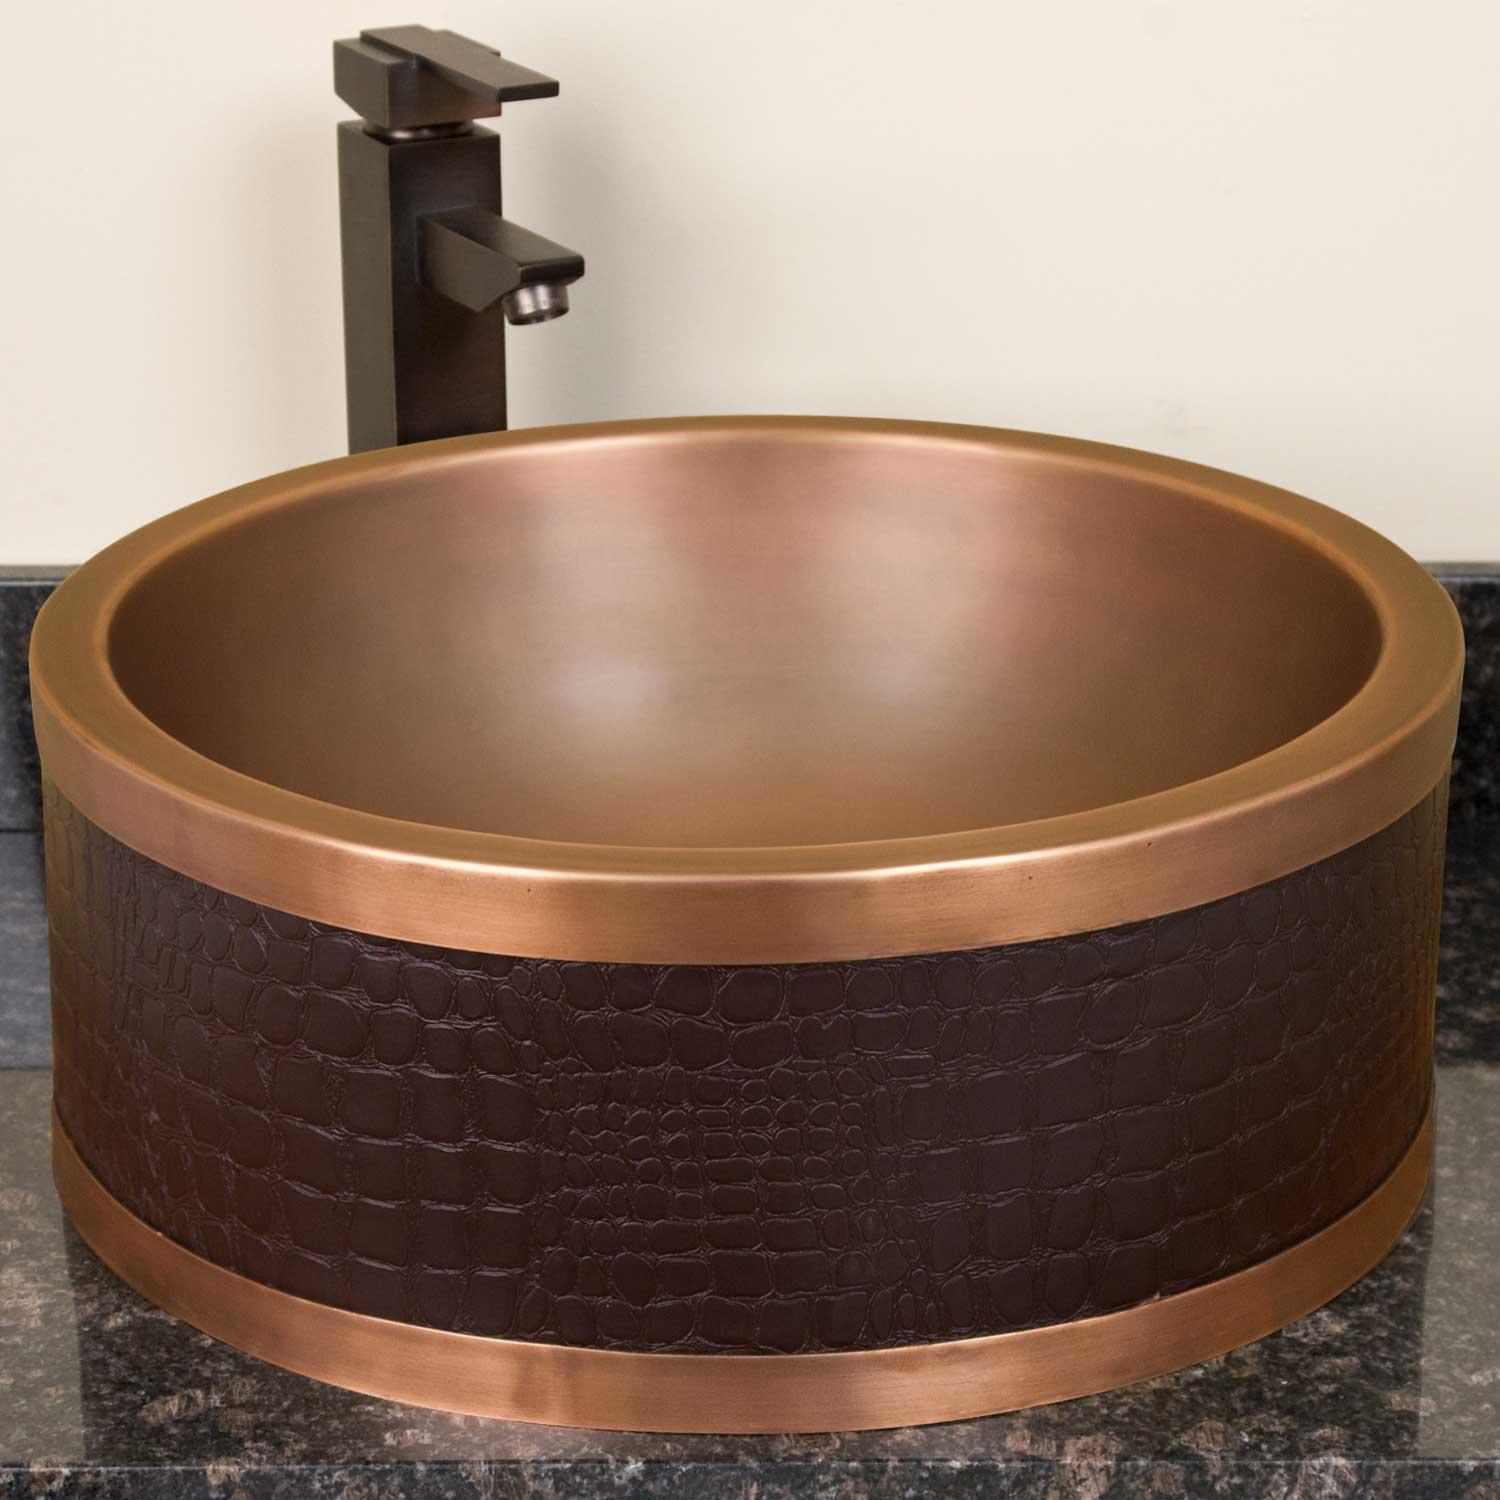 Exciting mirabelle sinks with Vessel Sinks Copper for bathroom with mirabelle undermount sink